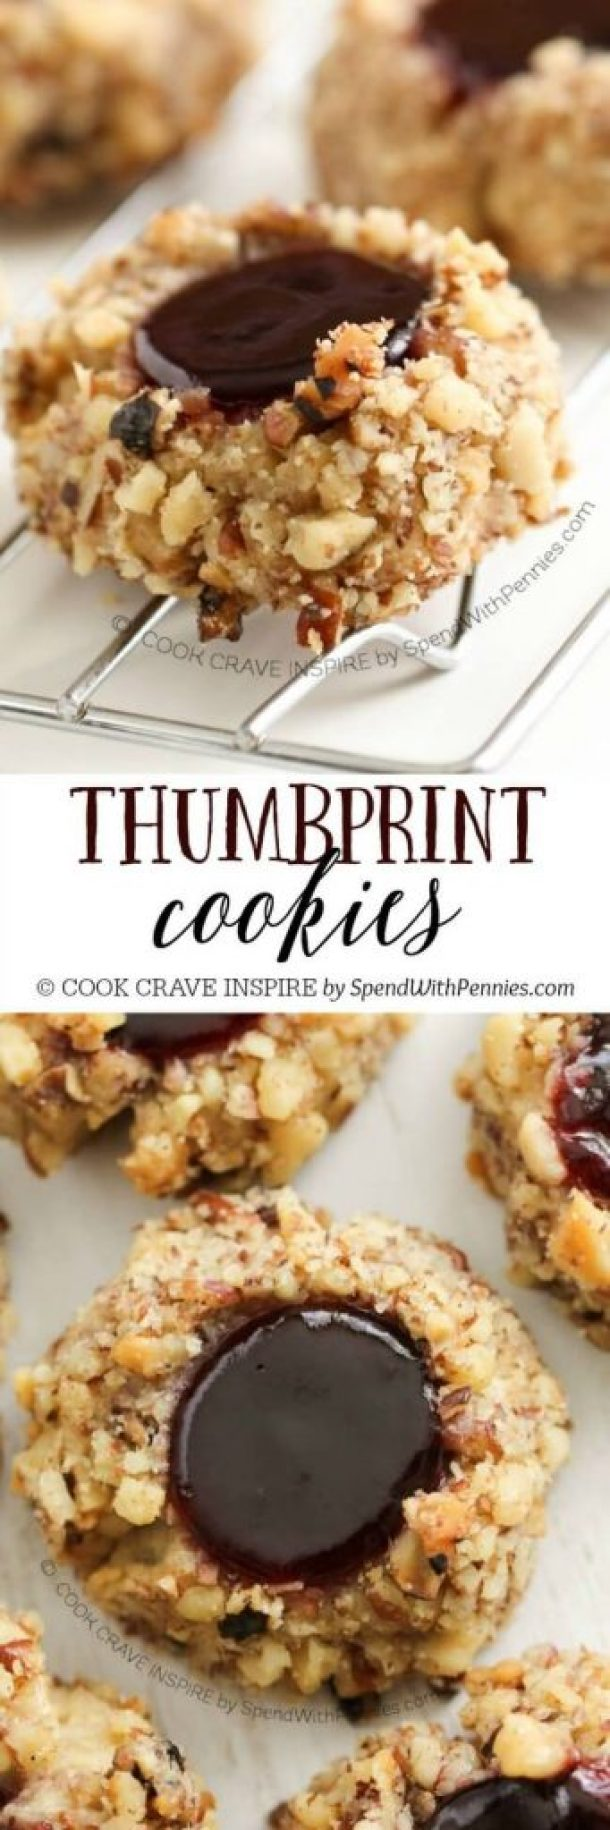 Classic Thumbprint Cookies Recipe | Spend With Pennies